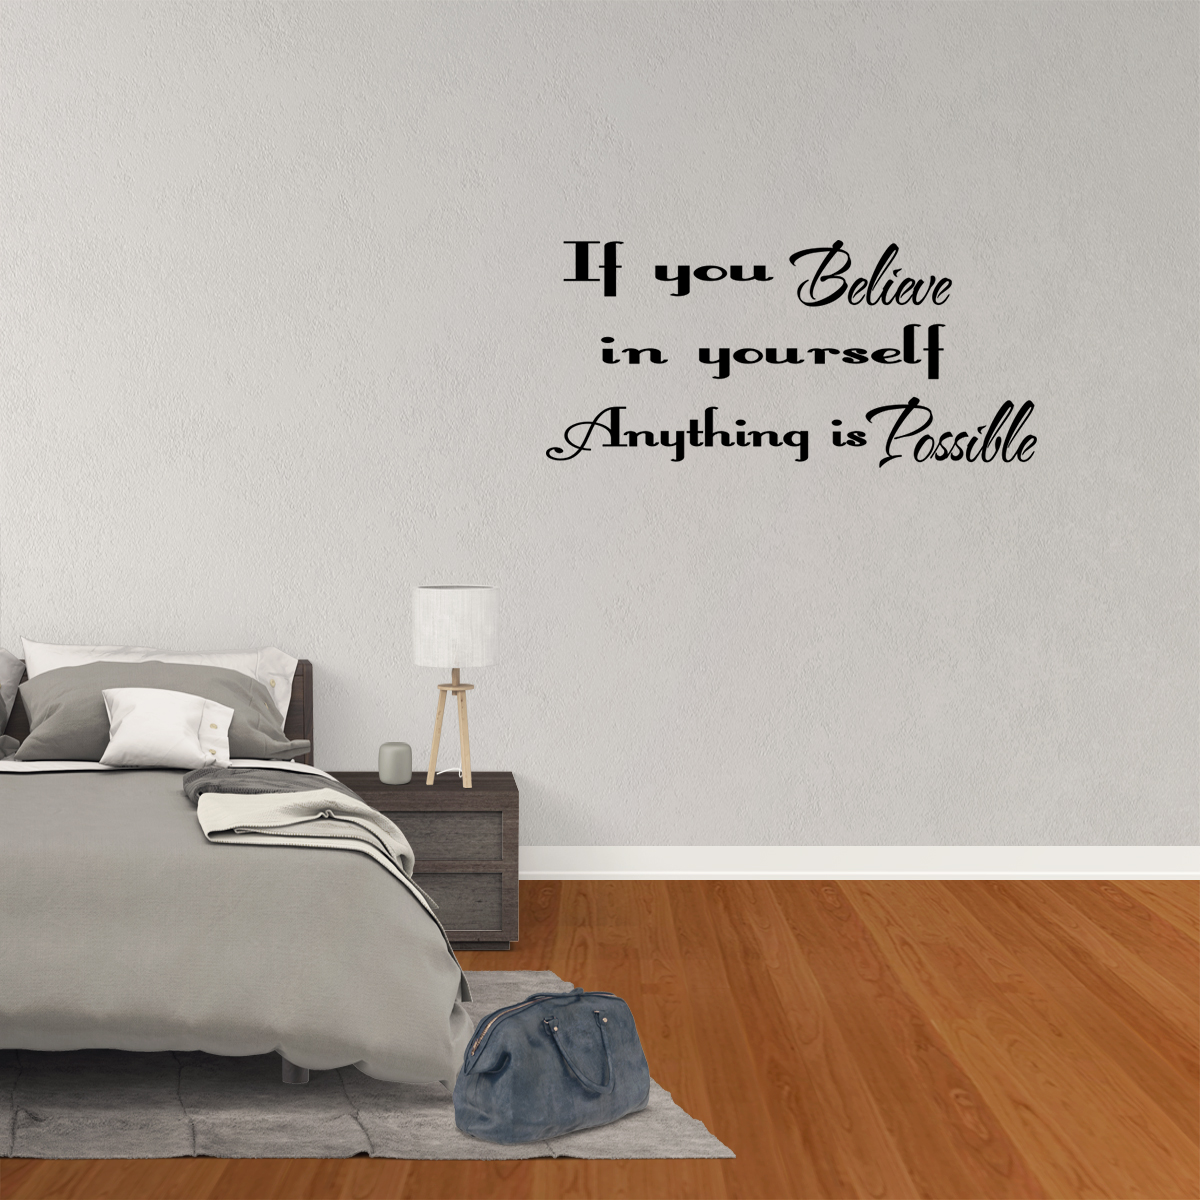 Believe In Yourself Wall Decal Quote Vinyl Inspirational Sticker Art 138